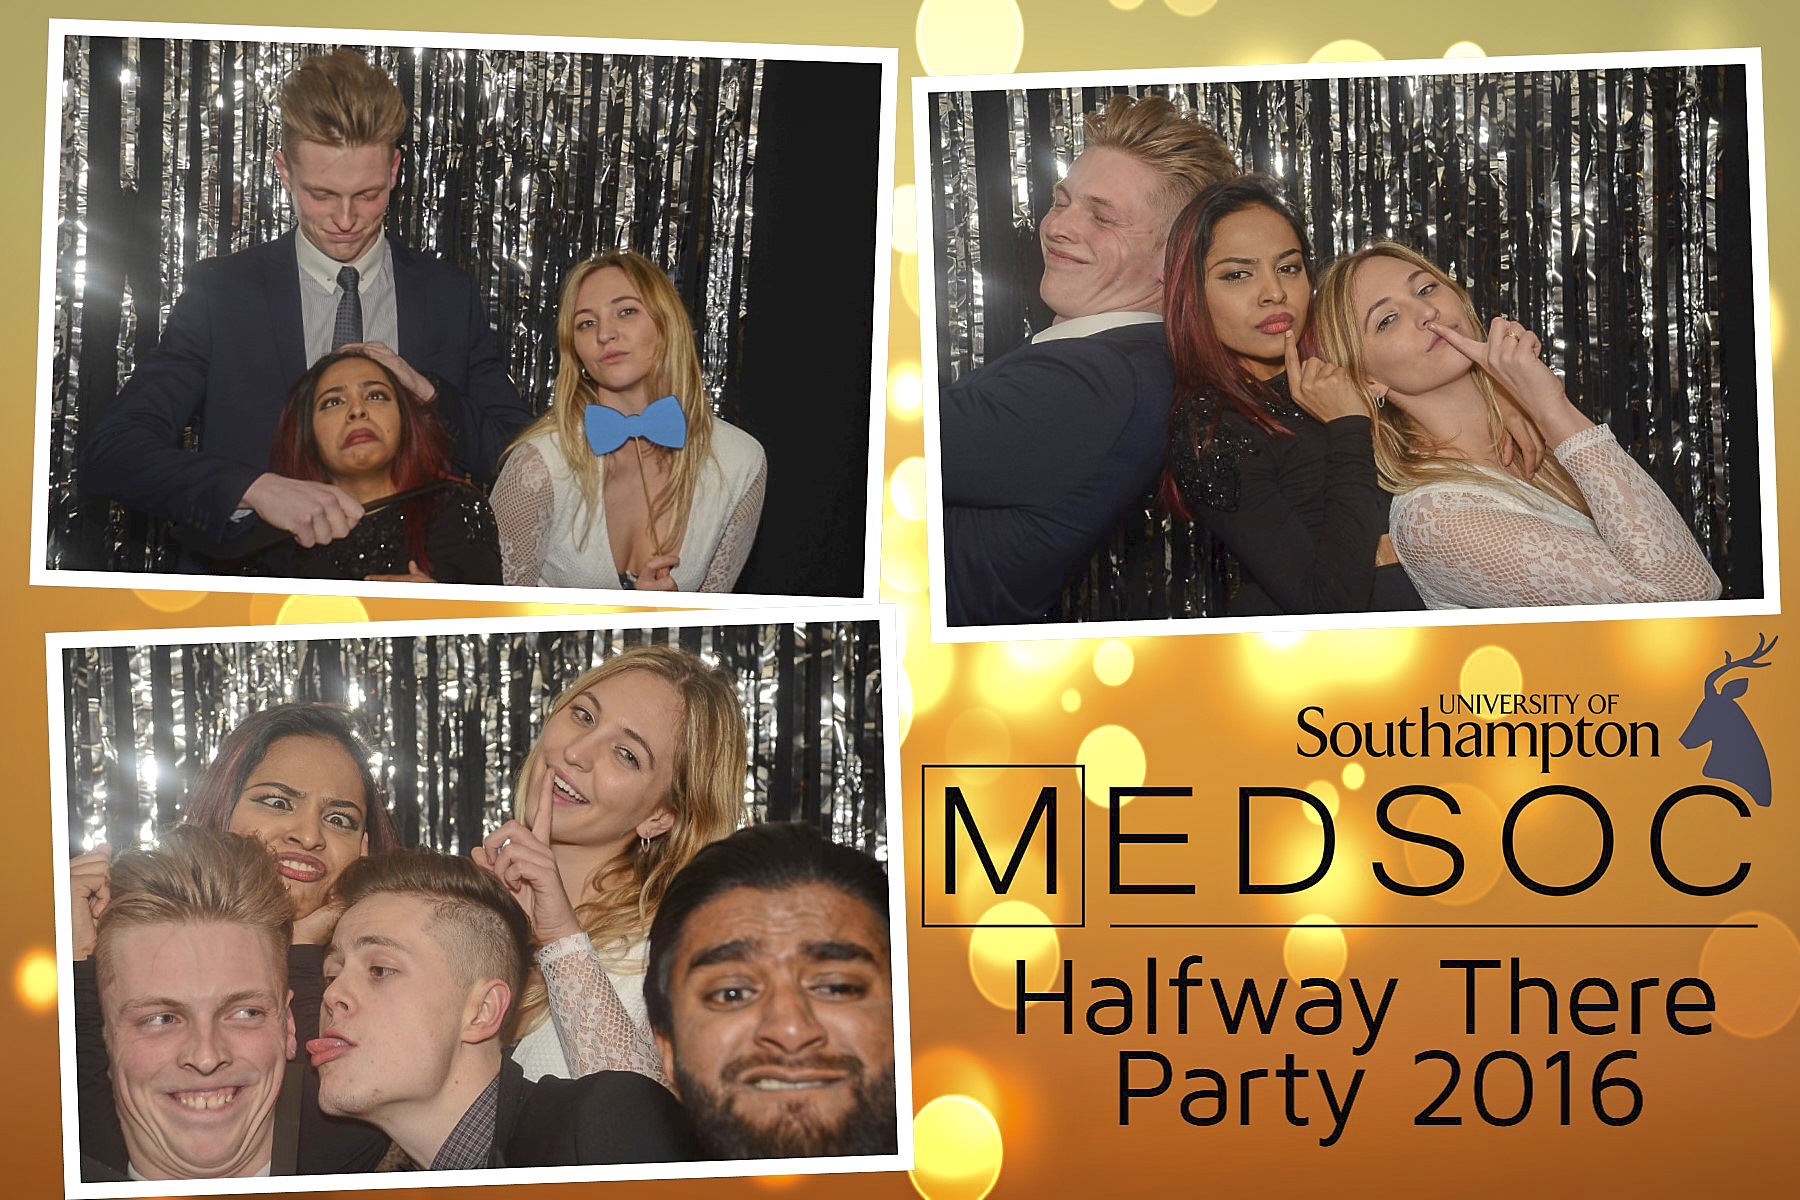 MedSoc Halfway There Party 2016 DS003850.jpg